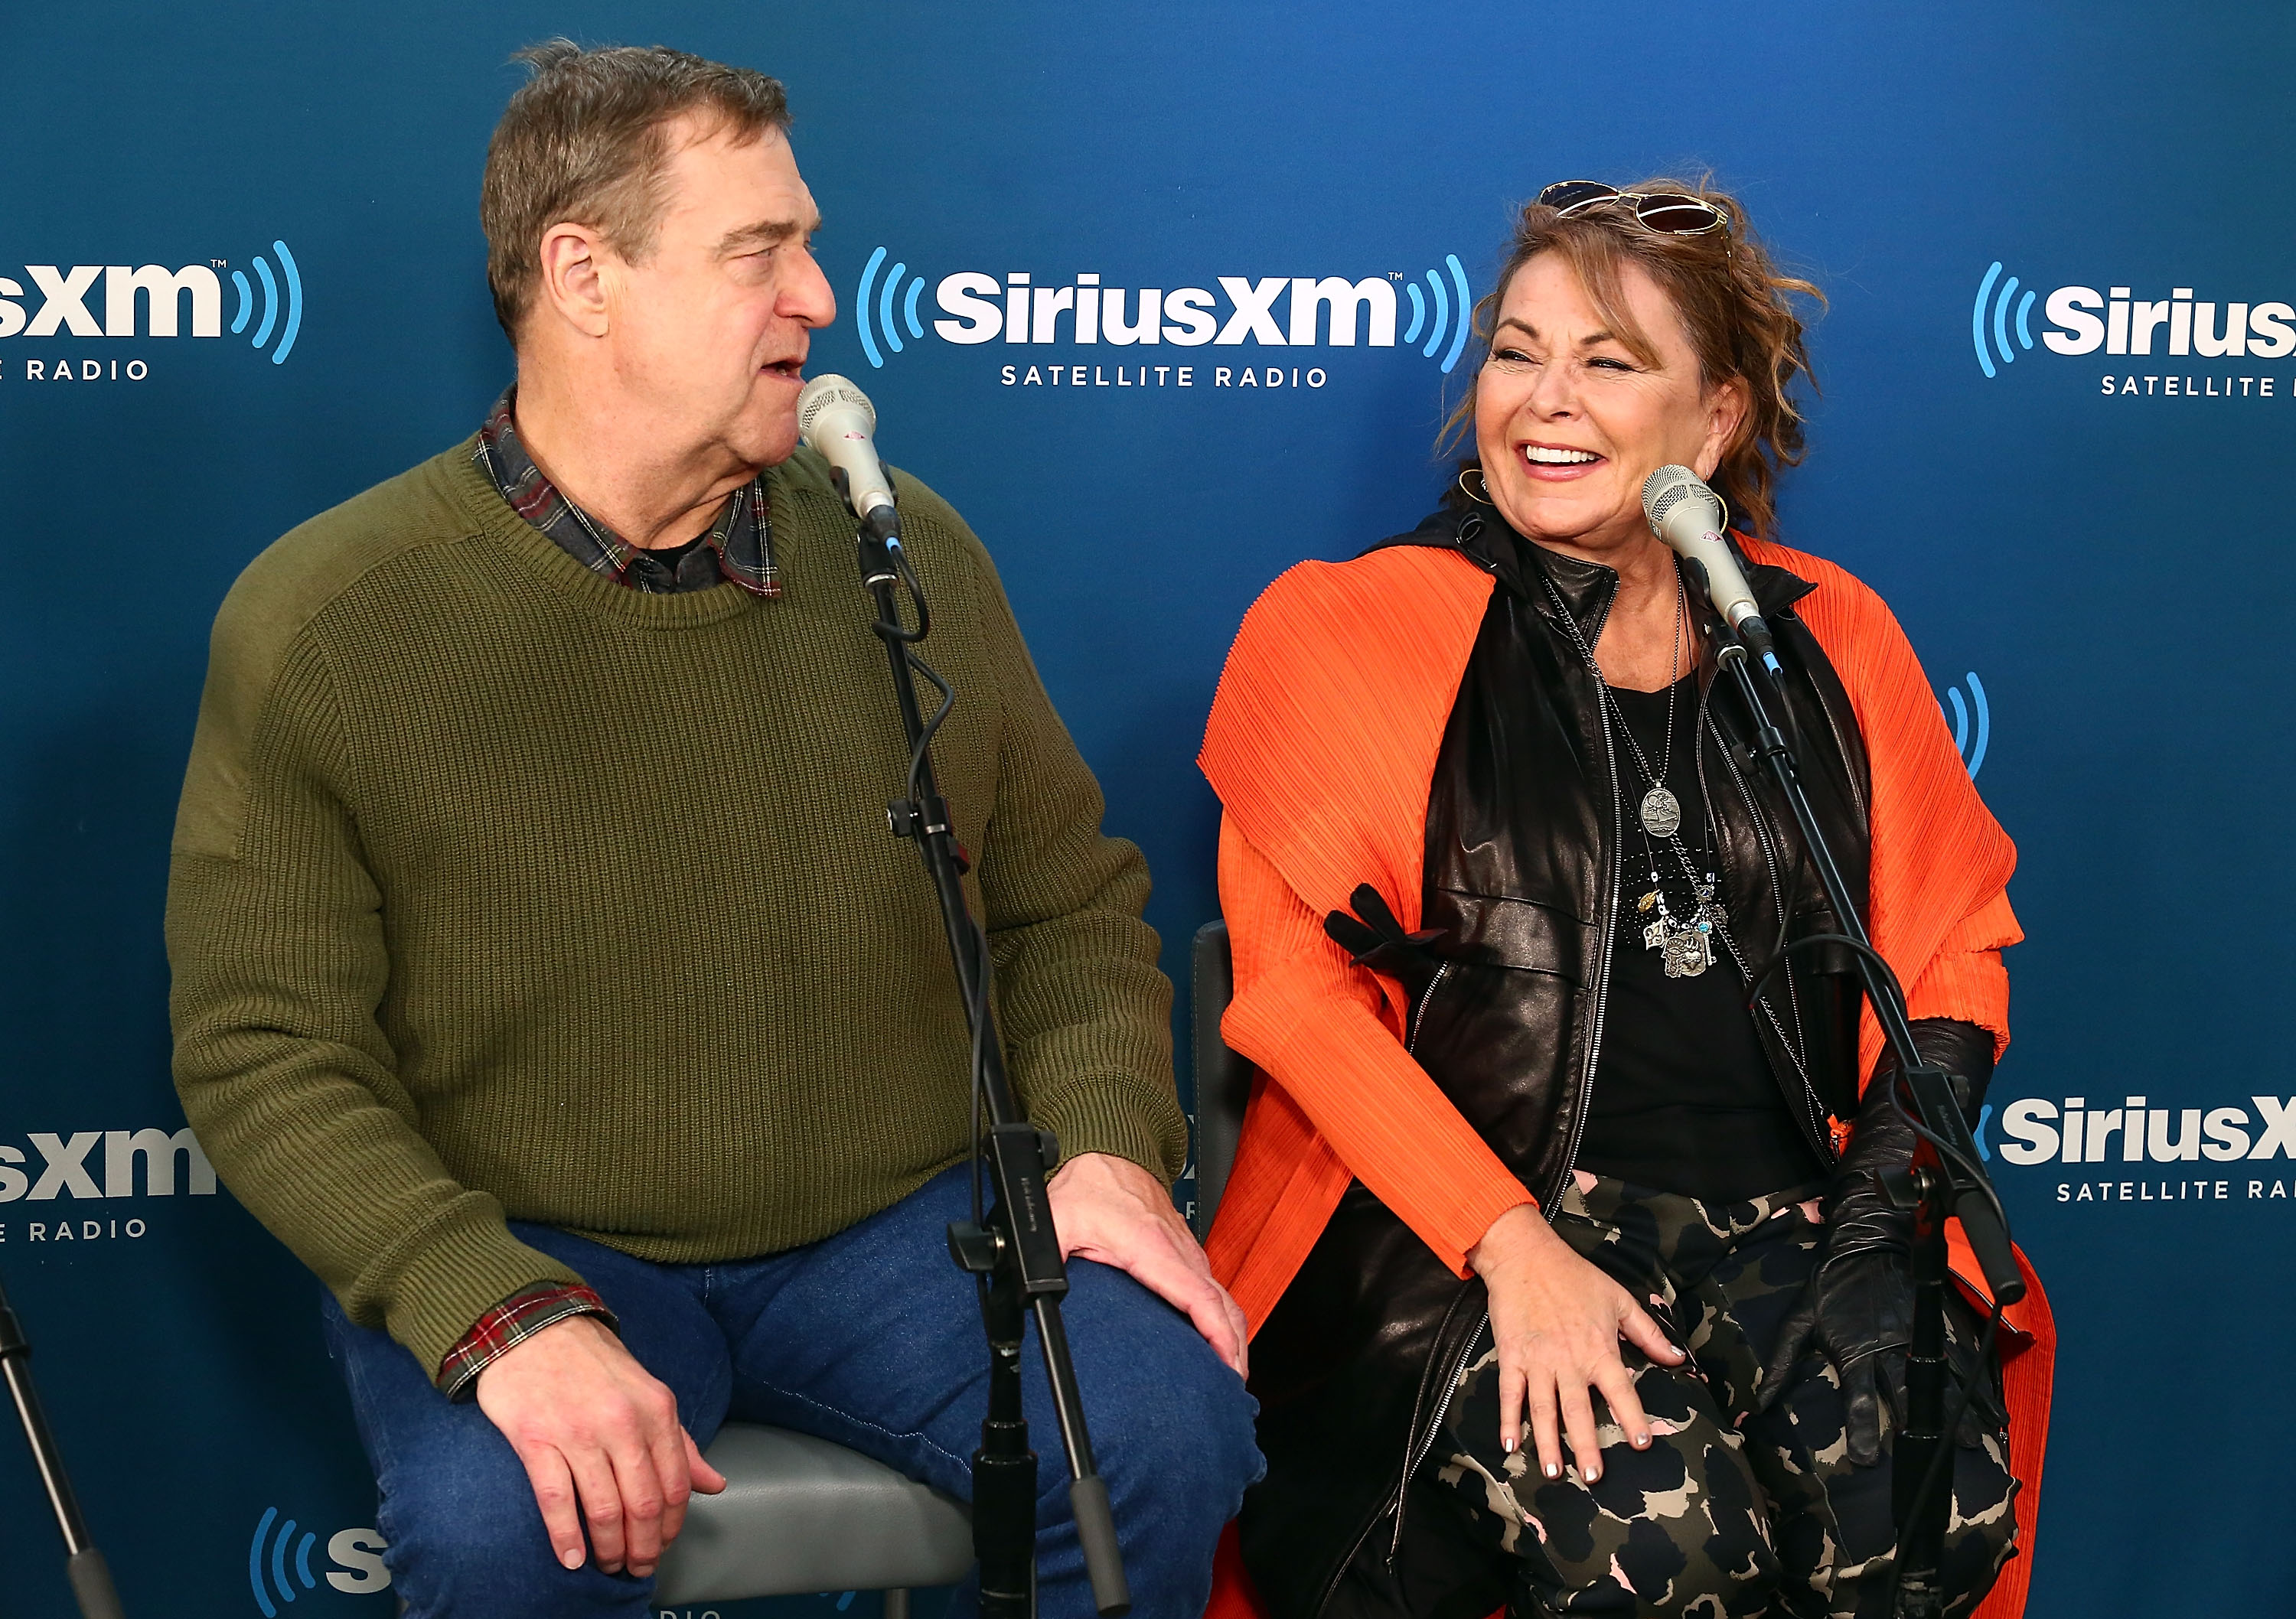 (L-R) Actors John Goodman and Roseanne Barr speak during SiriusXM's Town Hall with the cast of Roseanne on March 27, 2018 in New York City.